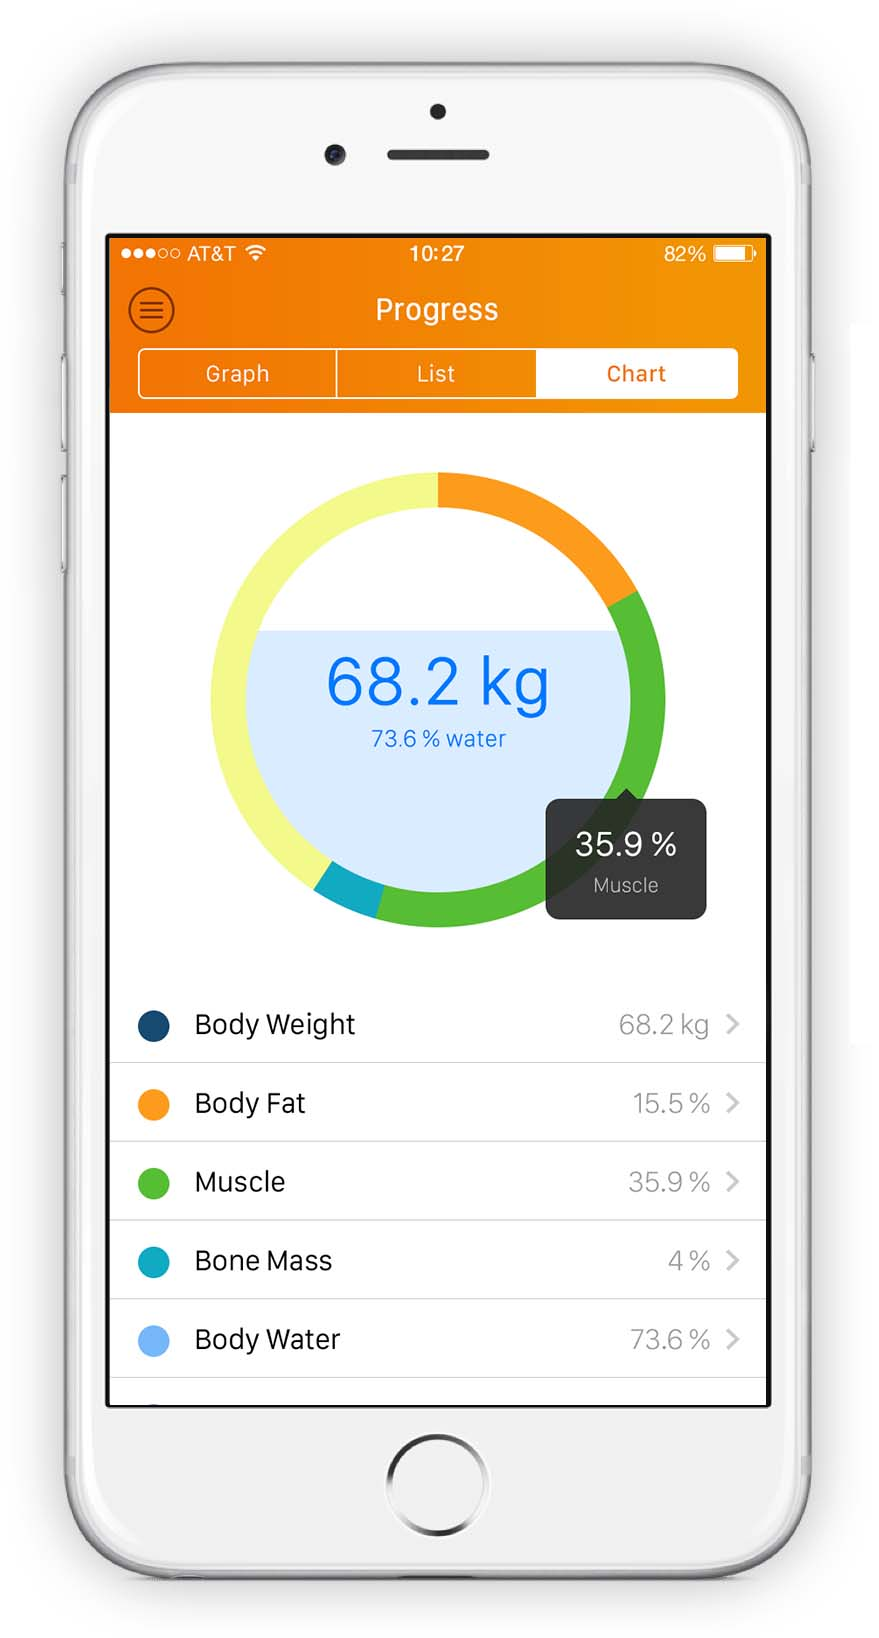 Virtuagym personal trainer app progression